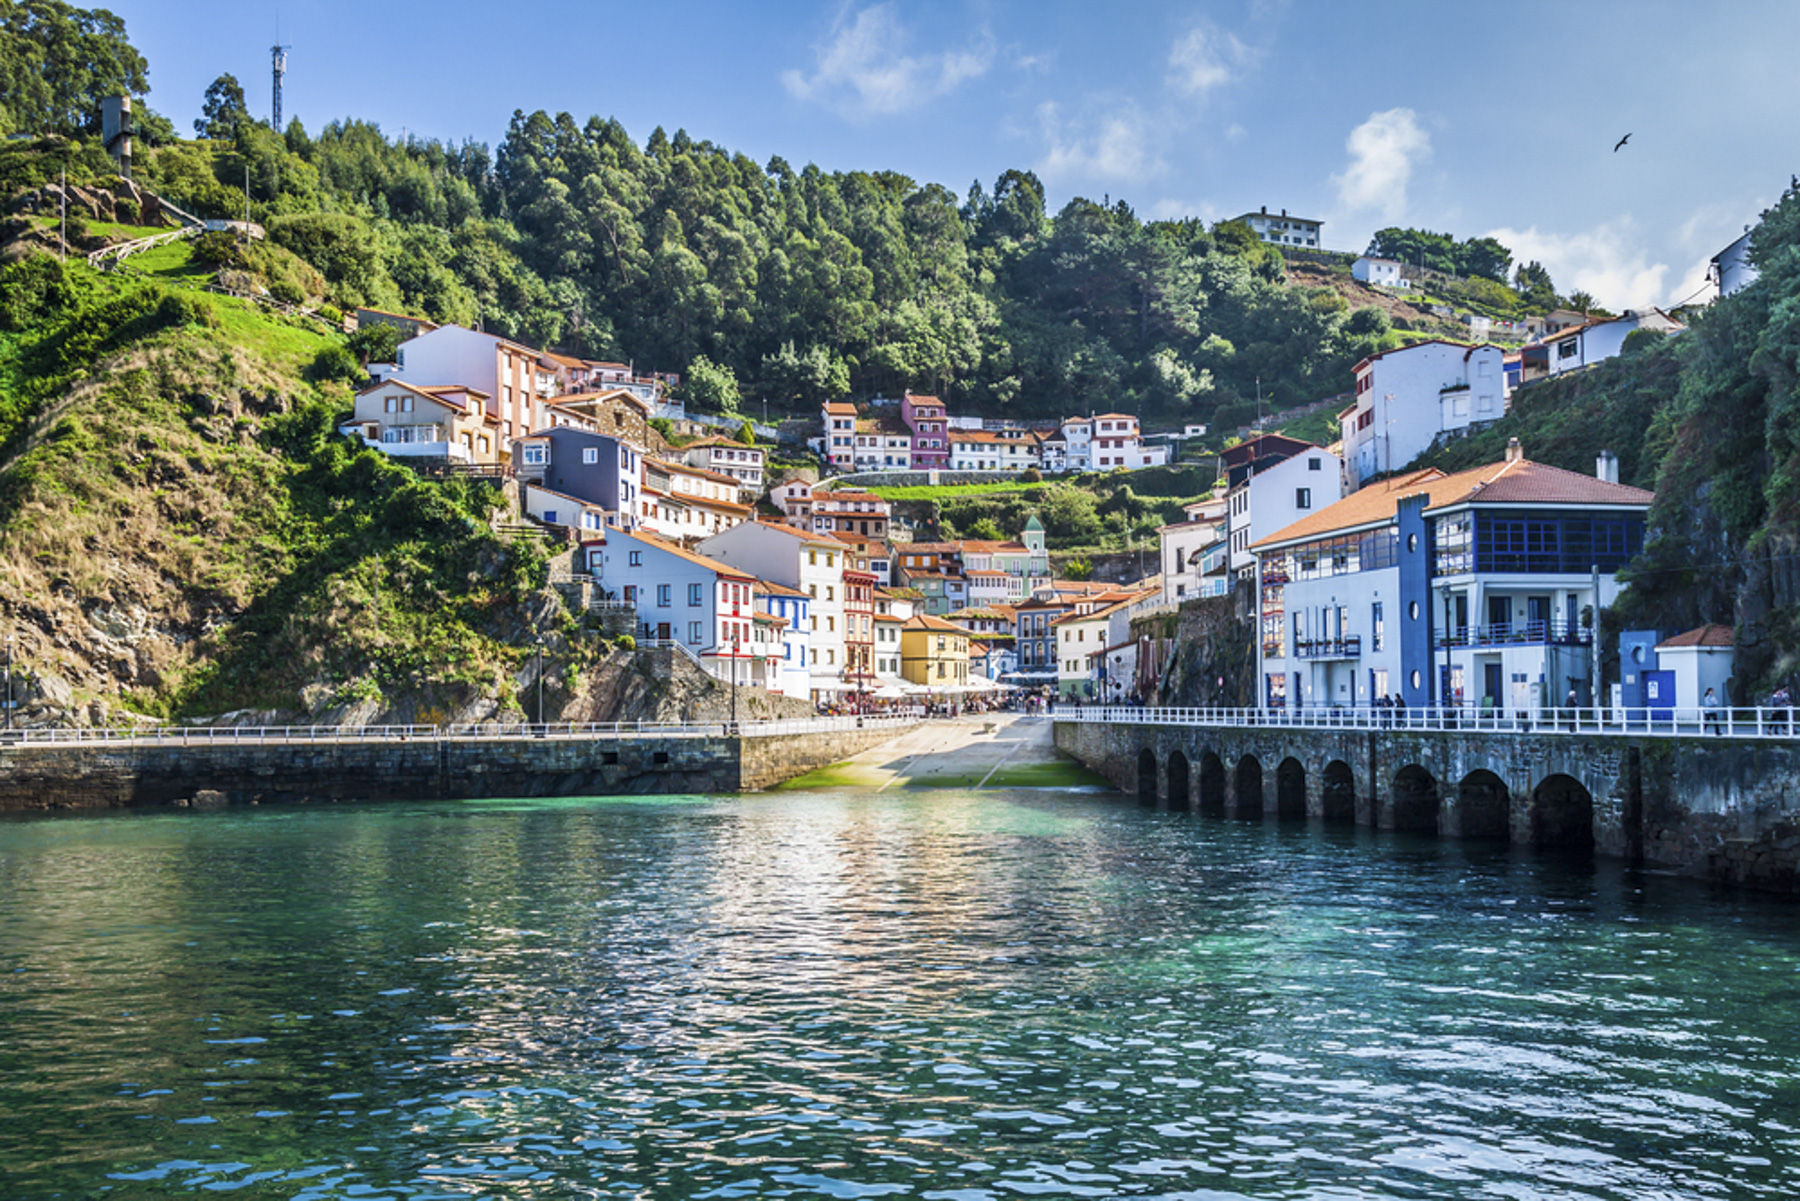 http://www.shutterstock.com/pic-235755028/stock-photo-cudillero-fishing-village-in-asturias-spain.html?language=es&src=htmeBXgUaplfyHNoDJNnpw-1-0